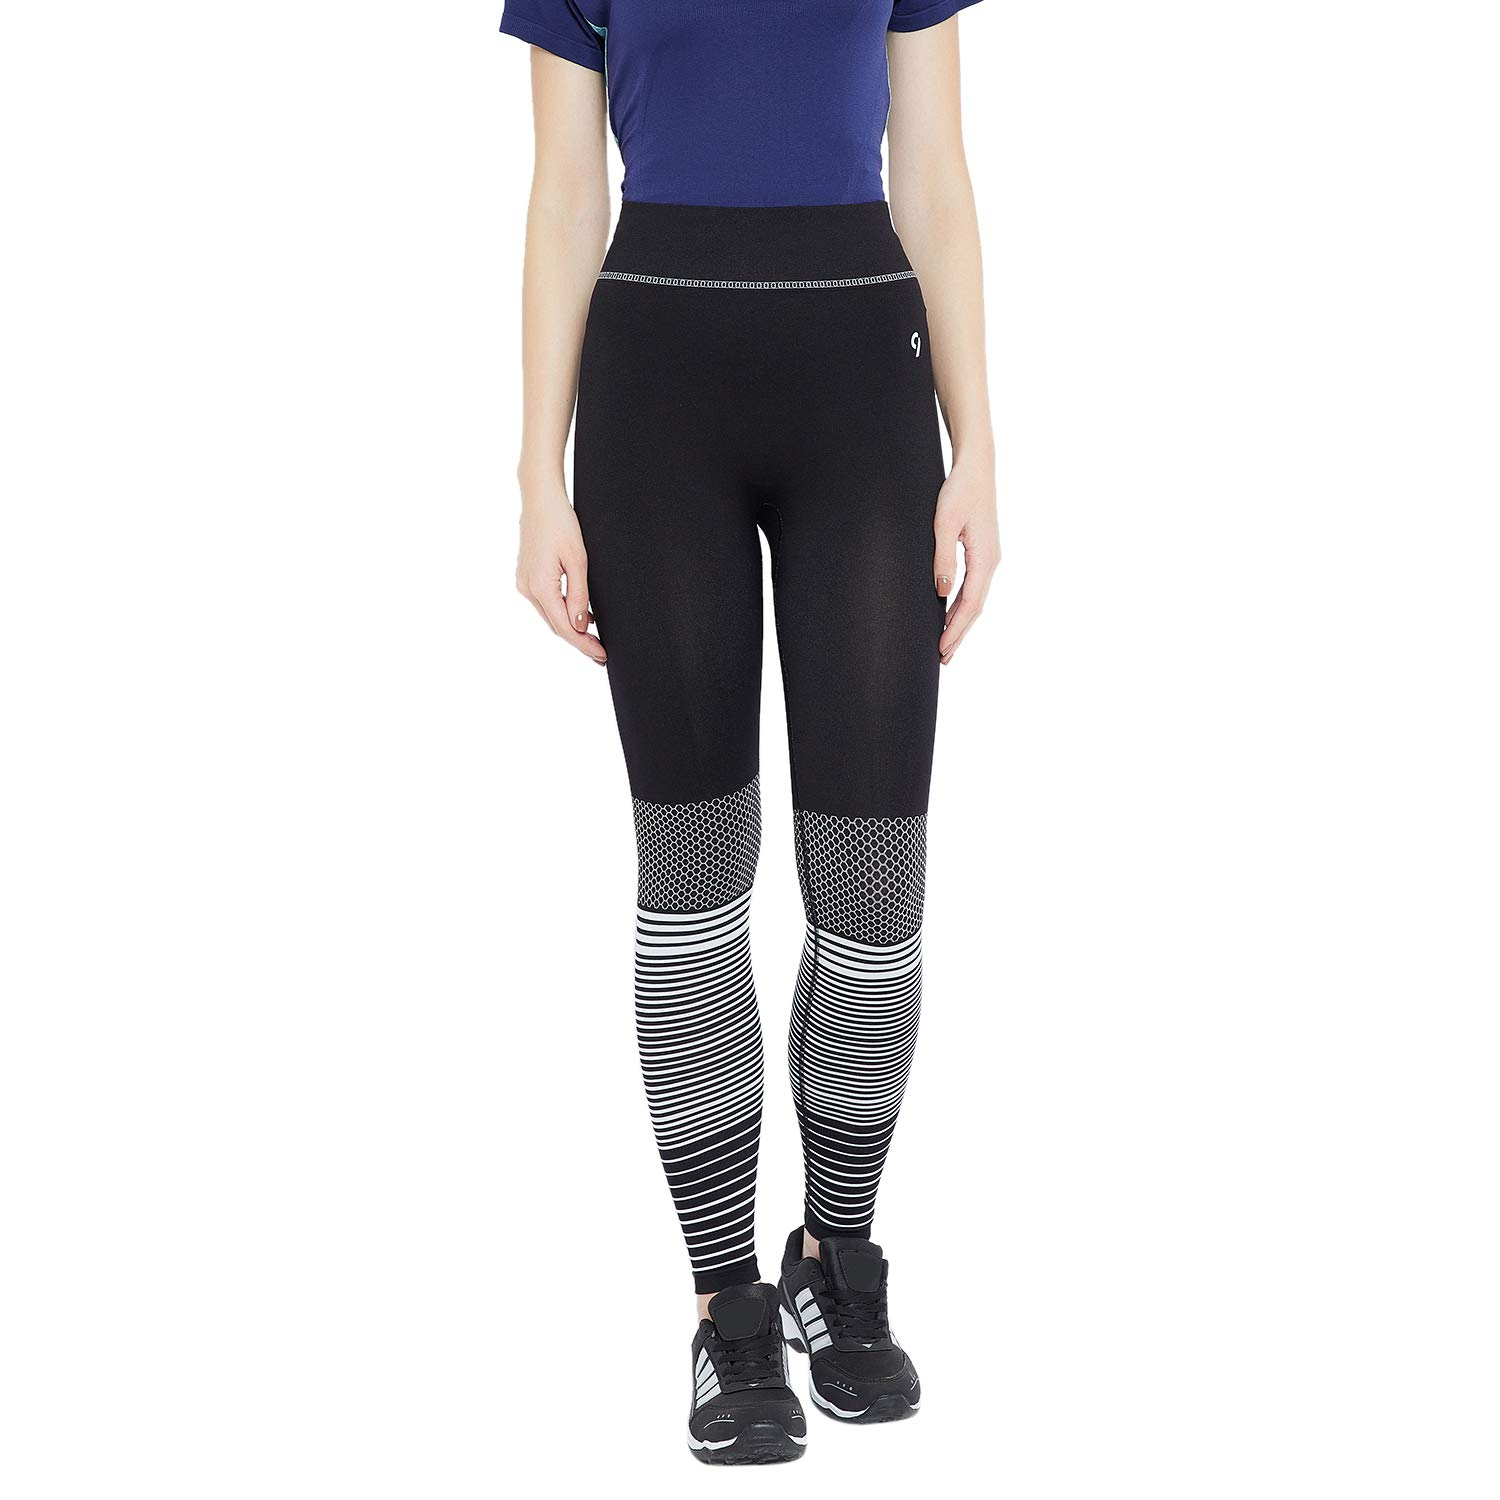 9b0a7da84a67d7 C9 Women Solid Jet Black Ankle Length Legging: Amazon.in: Clothing &  Accessories